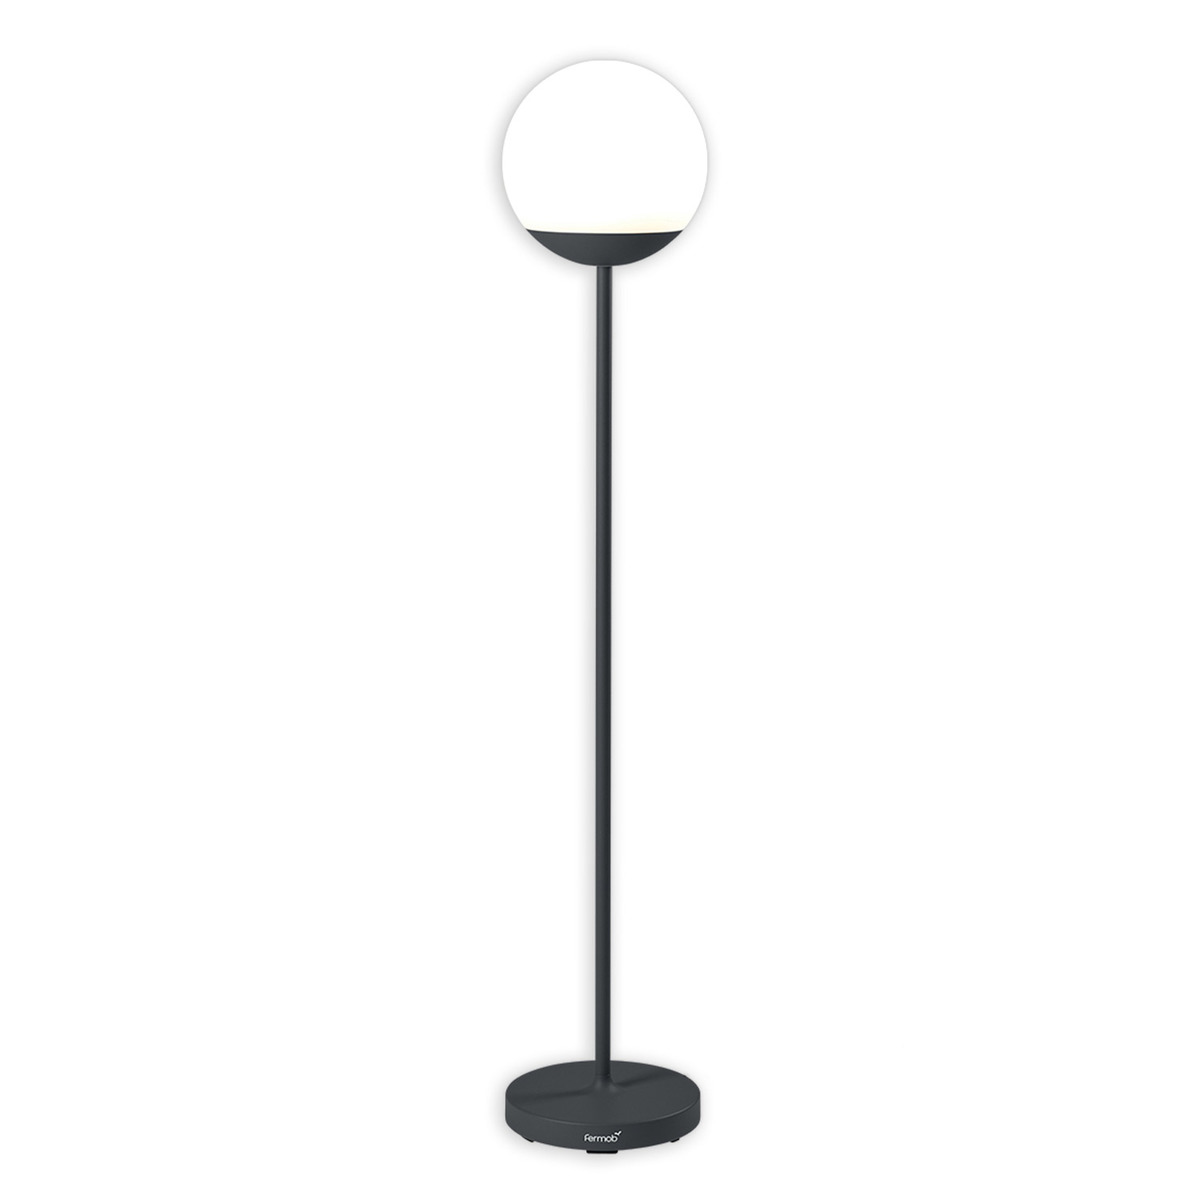 Fermob Mooon! Tall floor lamp, anthracite from Fermob